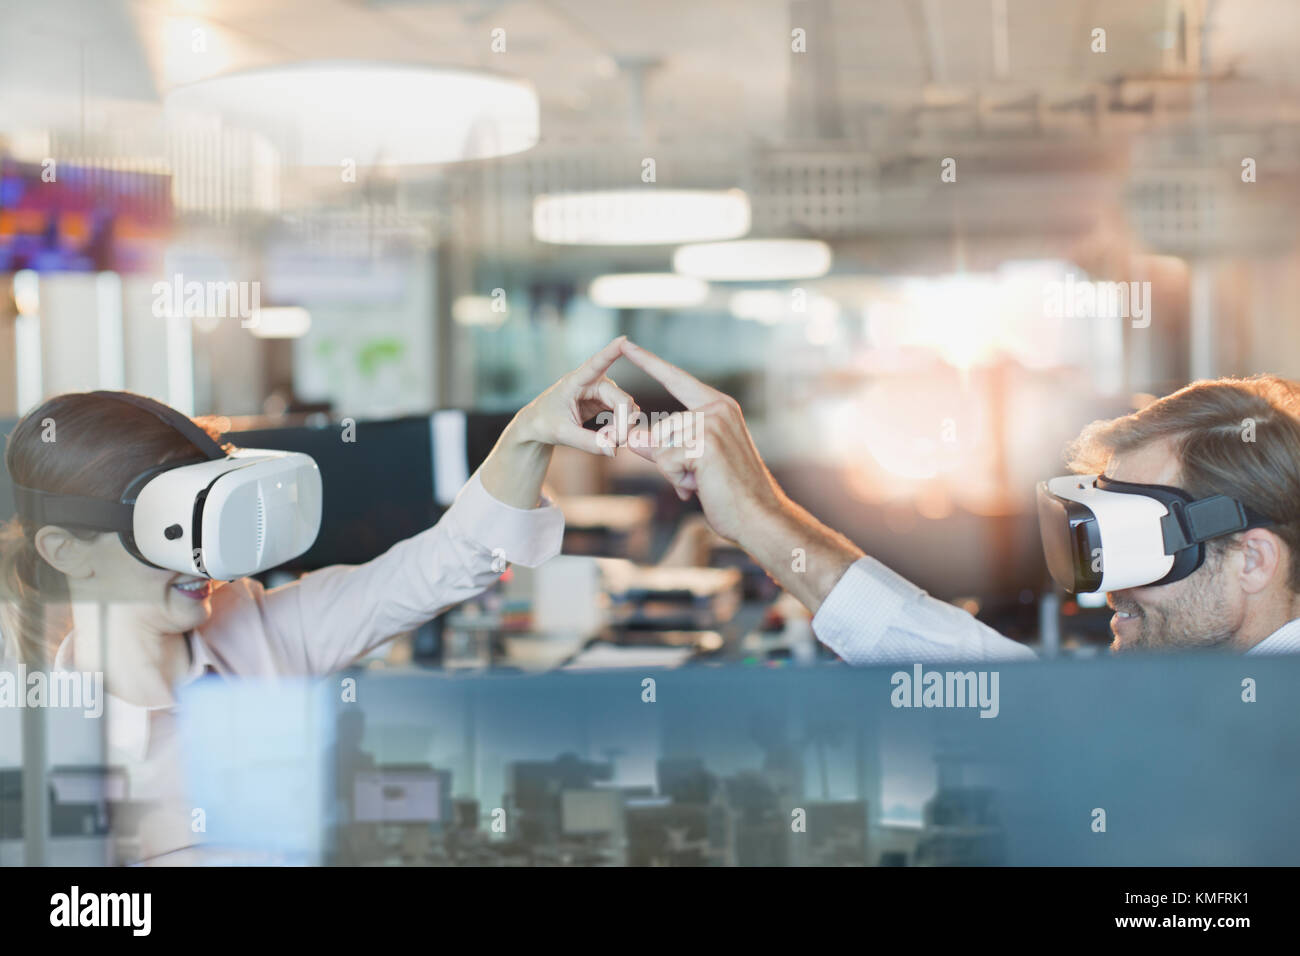 Computer programmers using virtual reality simulator glasses, touching fingers in office - Stock Image